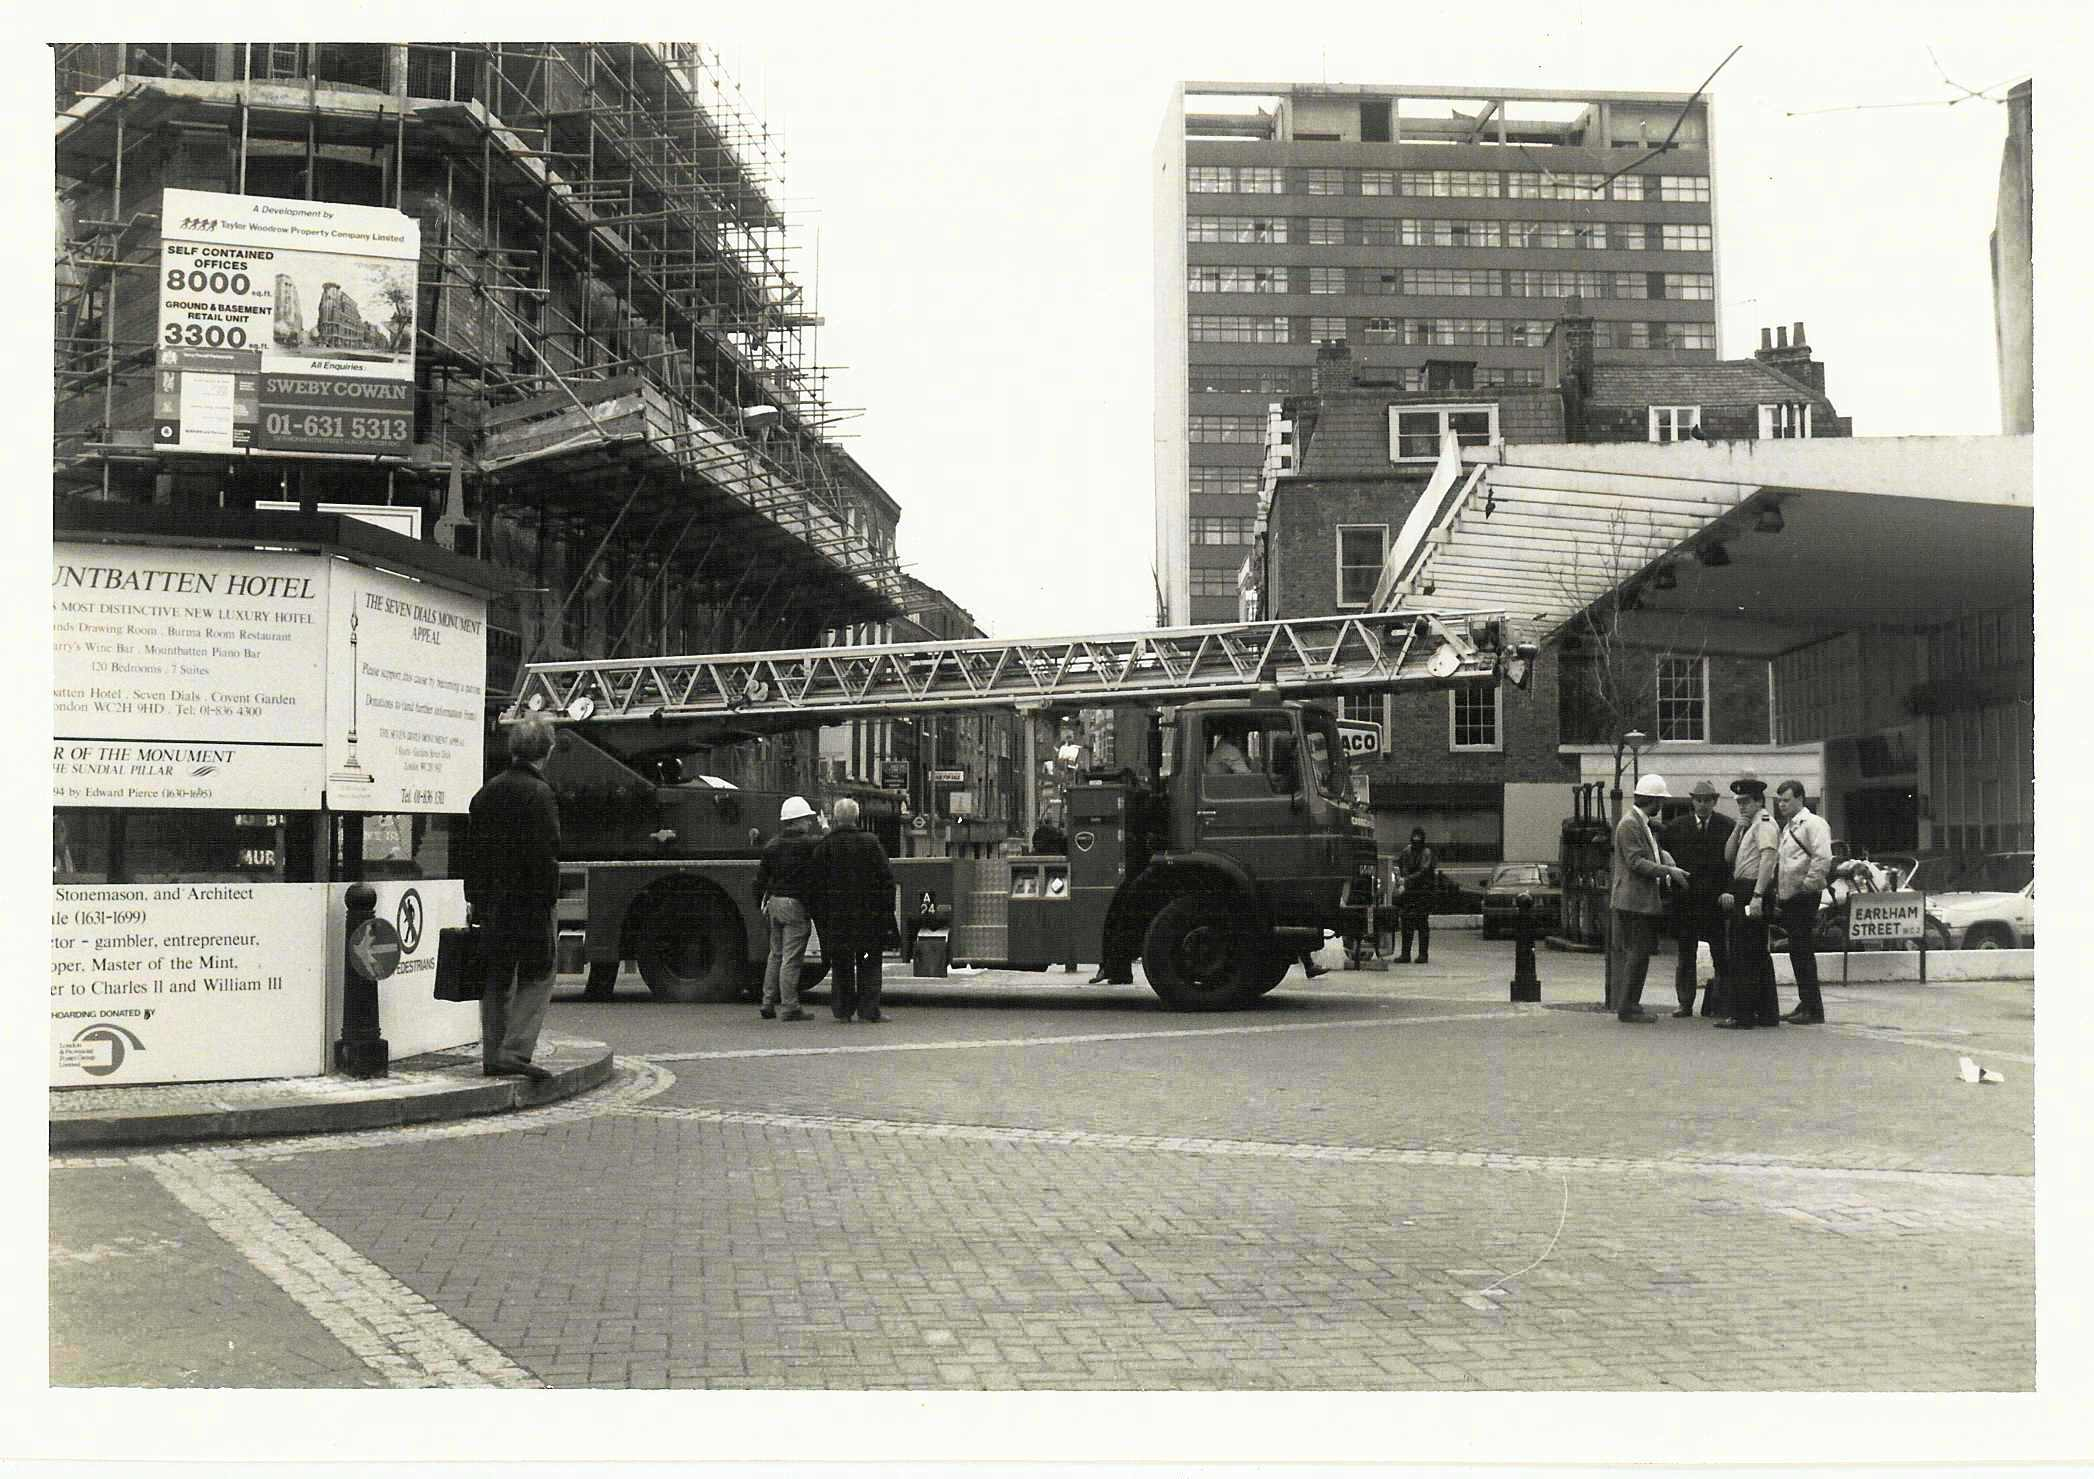 Borrowing a fire engine to measure out the foundation hoardings, 1985